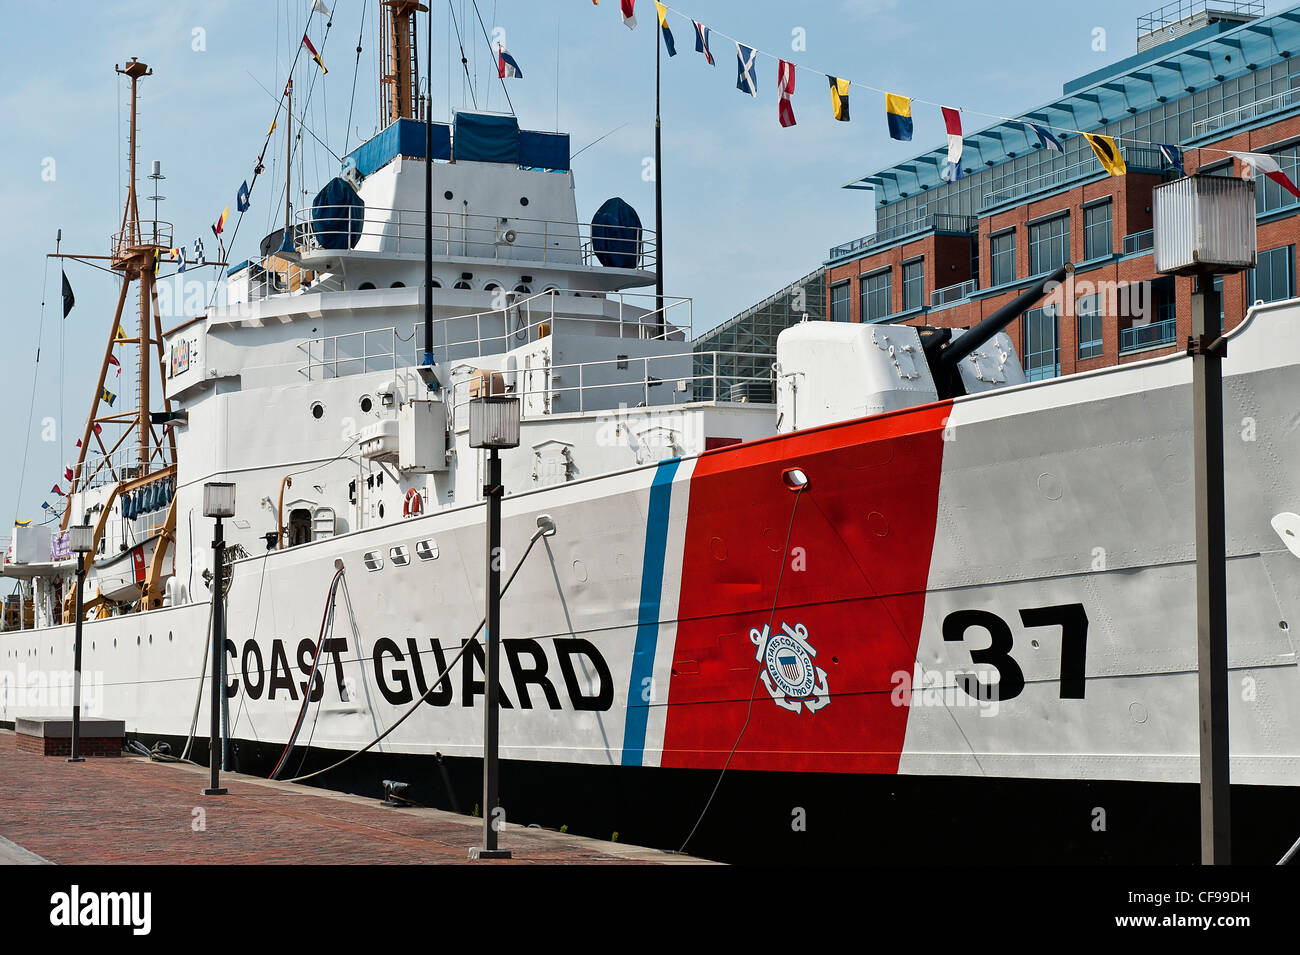 USCGC Taney, Coast Guard cutter now maritime museum ship, Inner Harbor, Baltimore, Maryland, USA - Stock Image